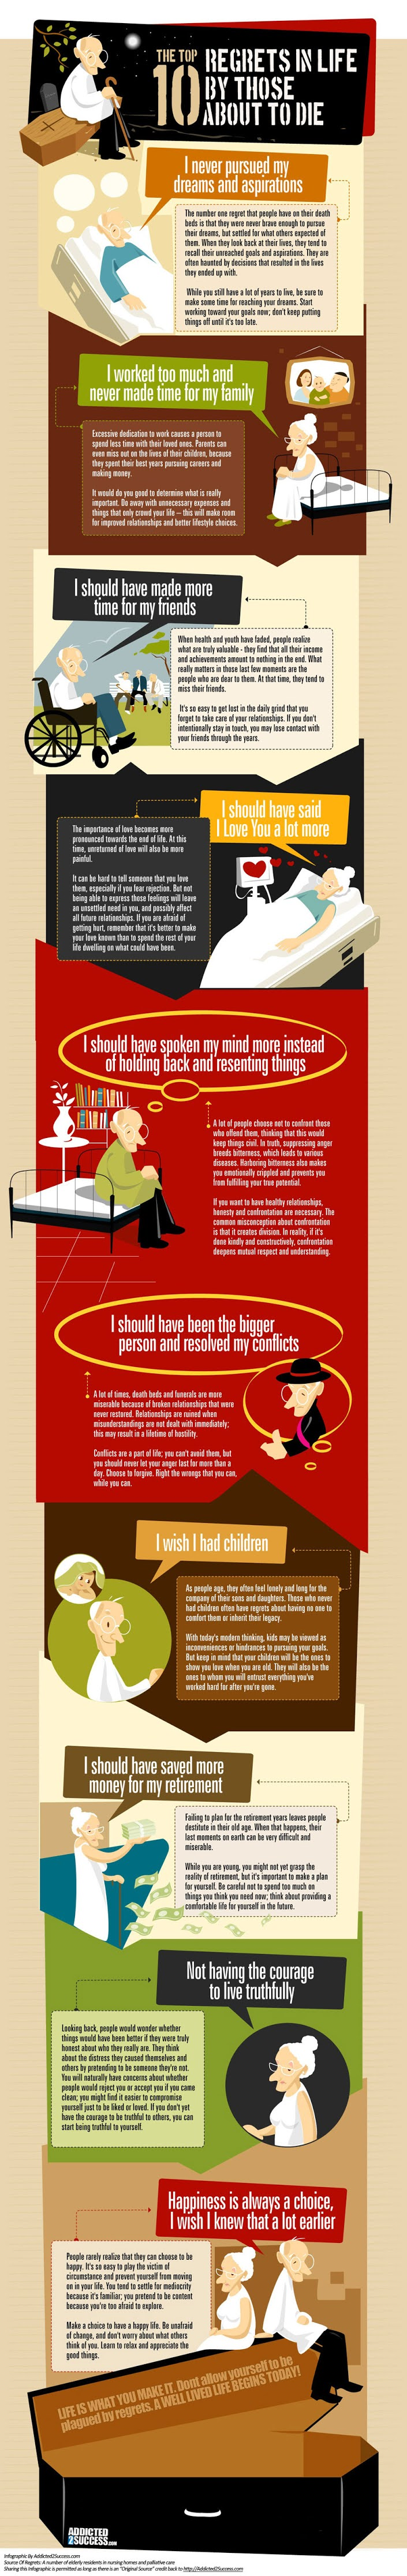 The Top 10 Regrets In Life By Those About To Die #infographic #Life #infographics #Positive Thinking #Regrets #Dreams